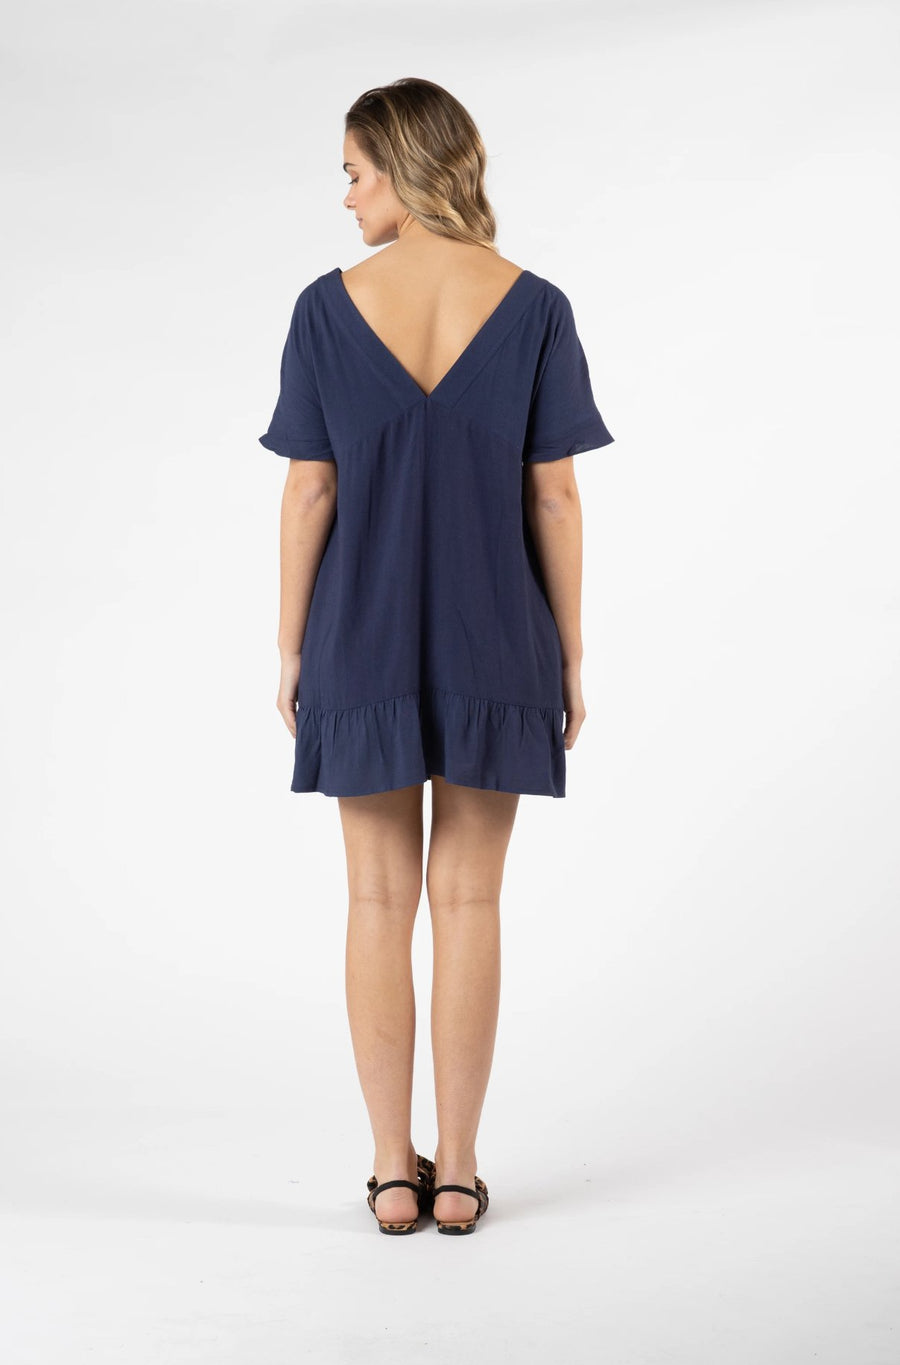 Skagen Dress Women | Lyn Rose Boutique